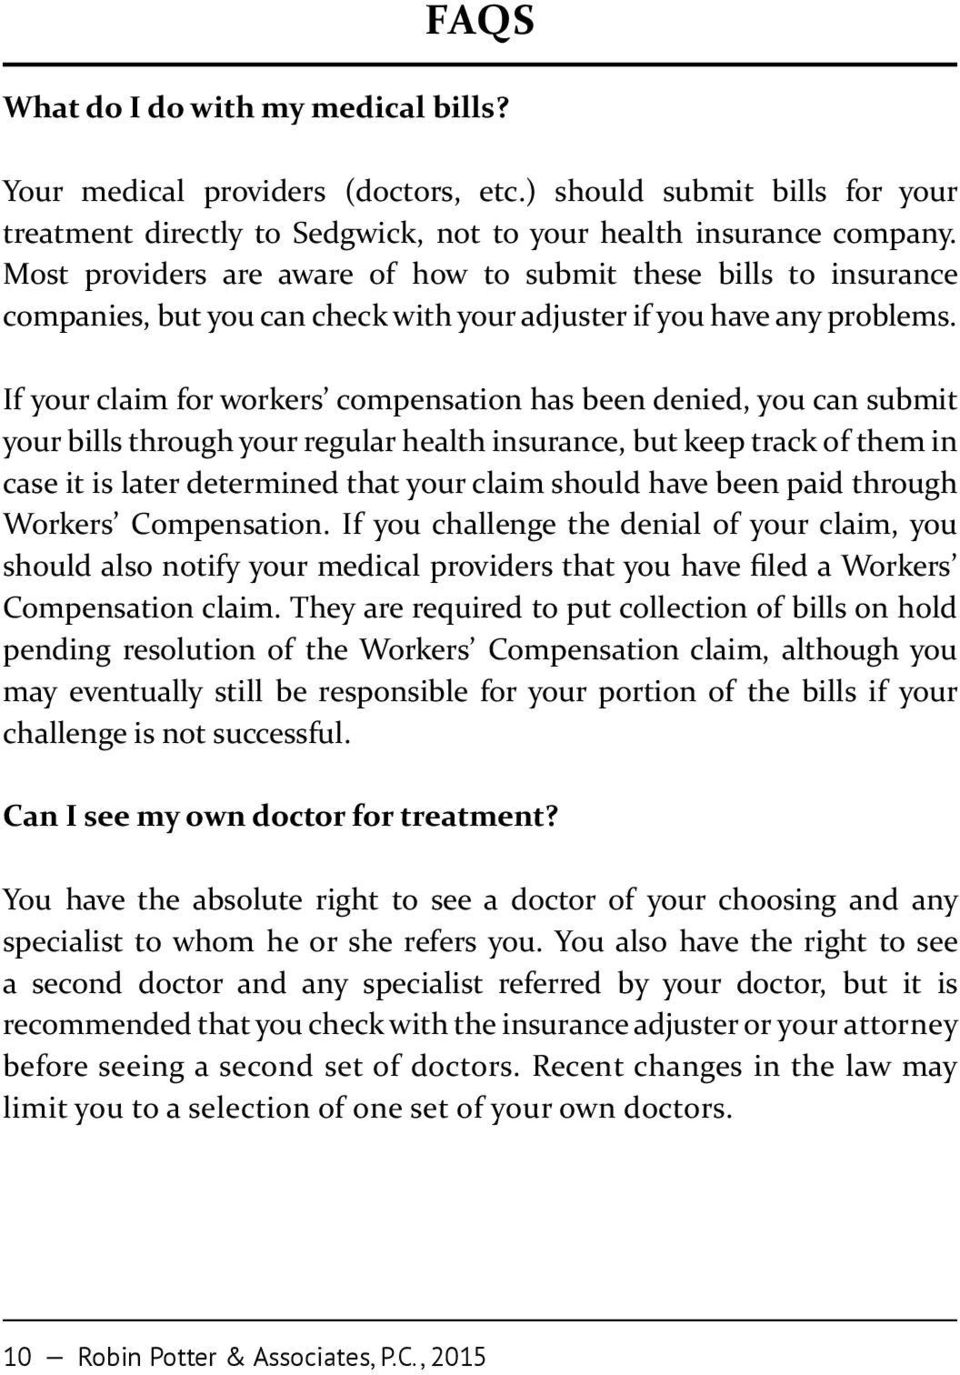 If your claim for workers compensation has been denied, you can submit your bills through your regular health insurance, but keep track of them in case it is later determined that your claim should